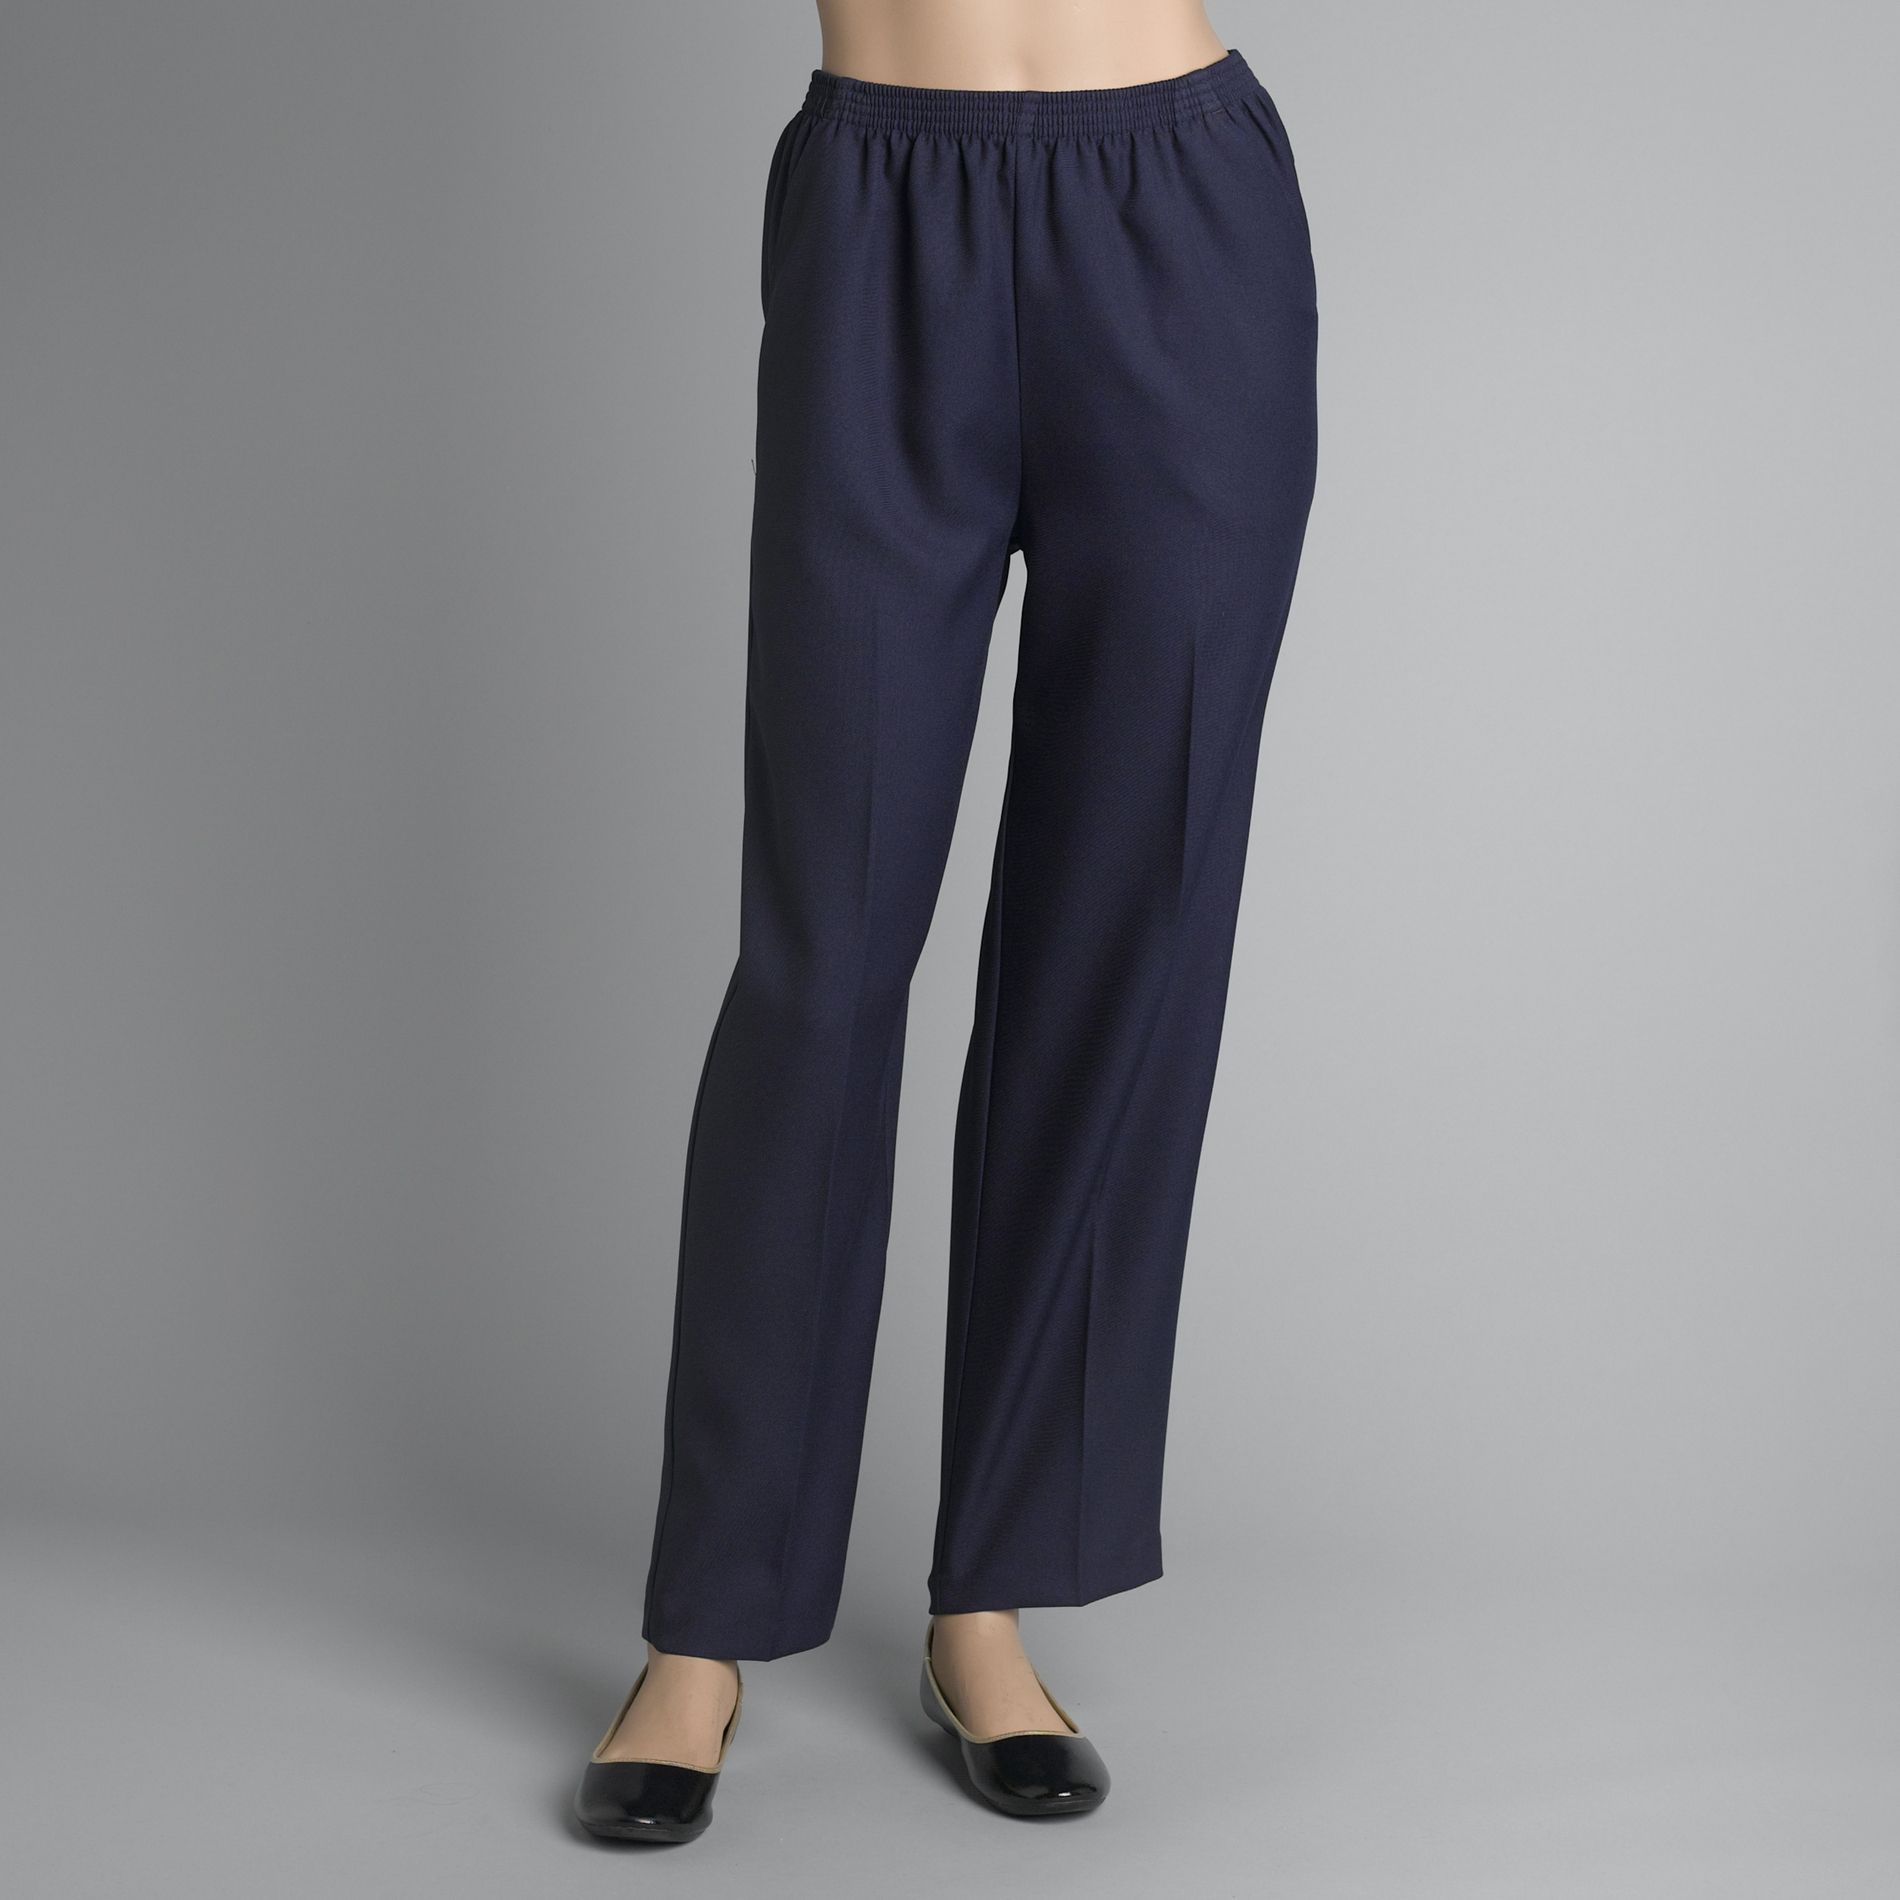 Monterey Canyon  Women's Pull-On Pants -